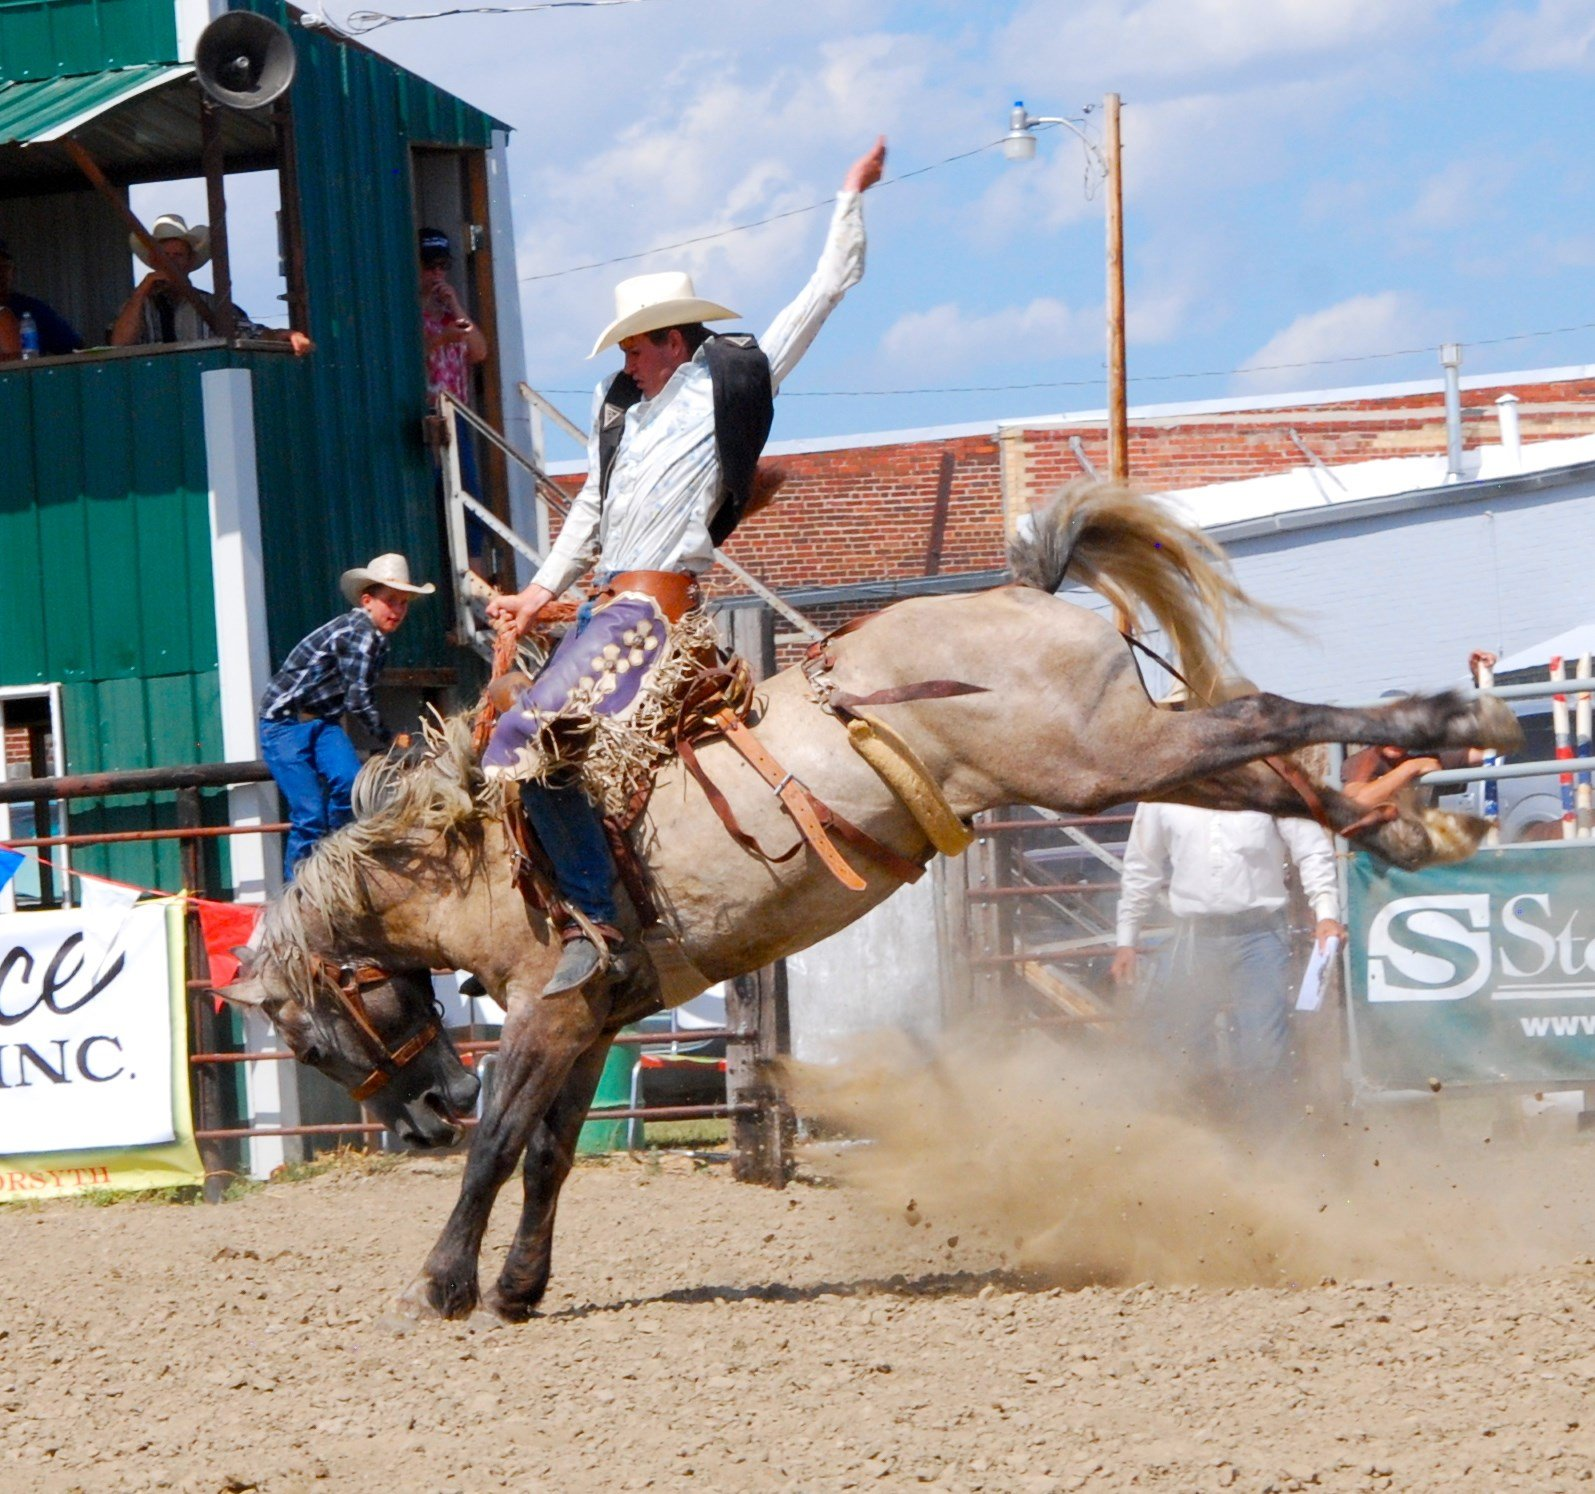 The annual rodeo draws riders from across Eastern MT (Cameron)